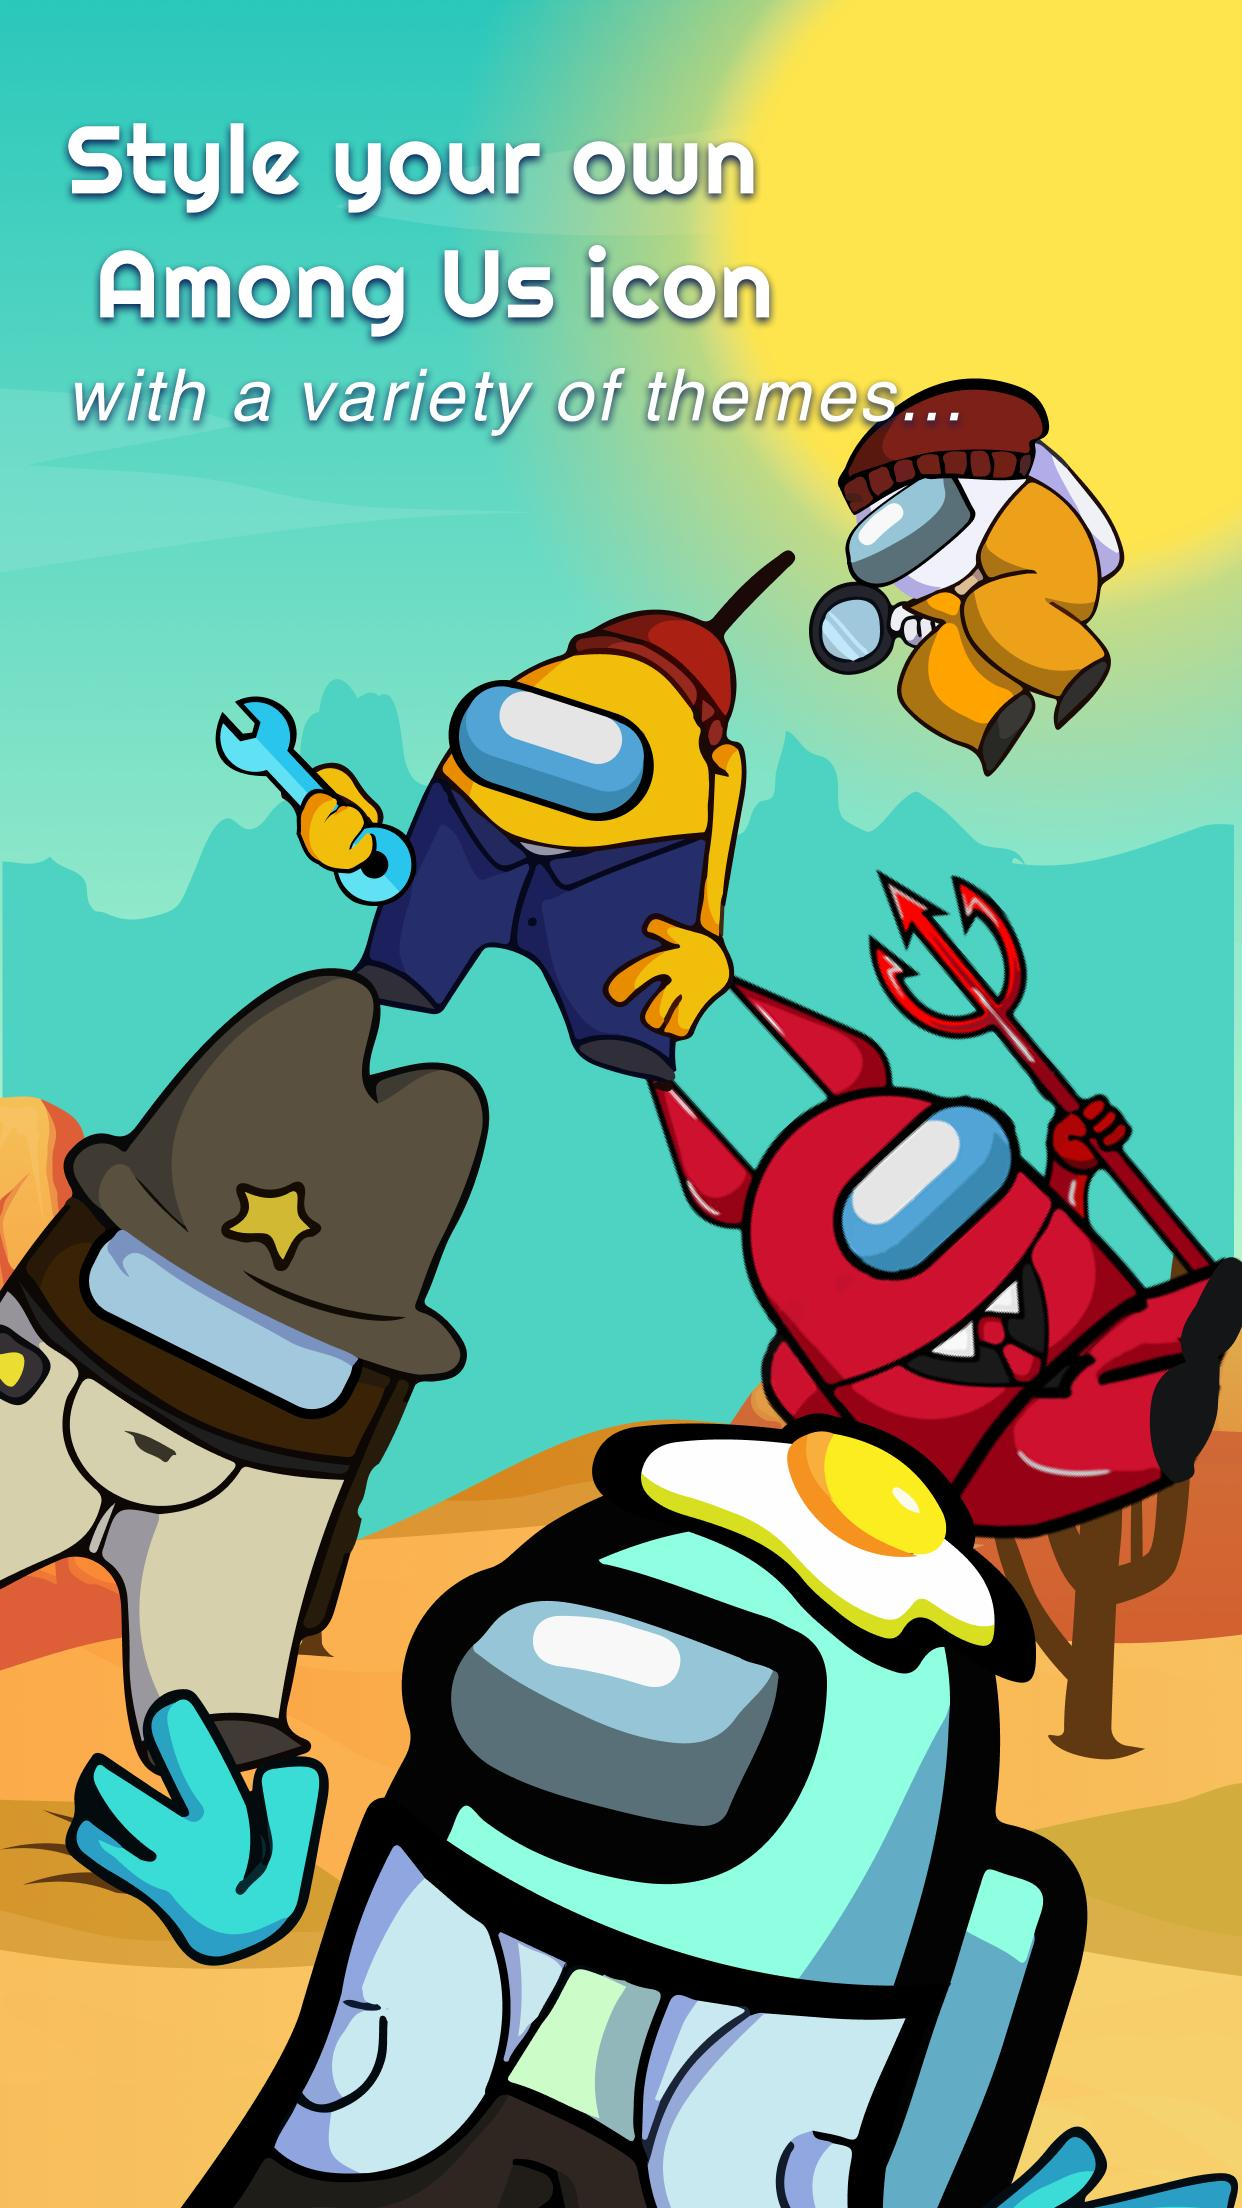 Among Us Maker For Android Apk Download